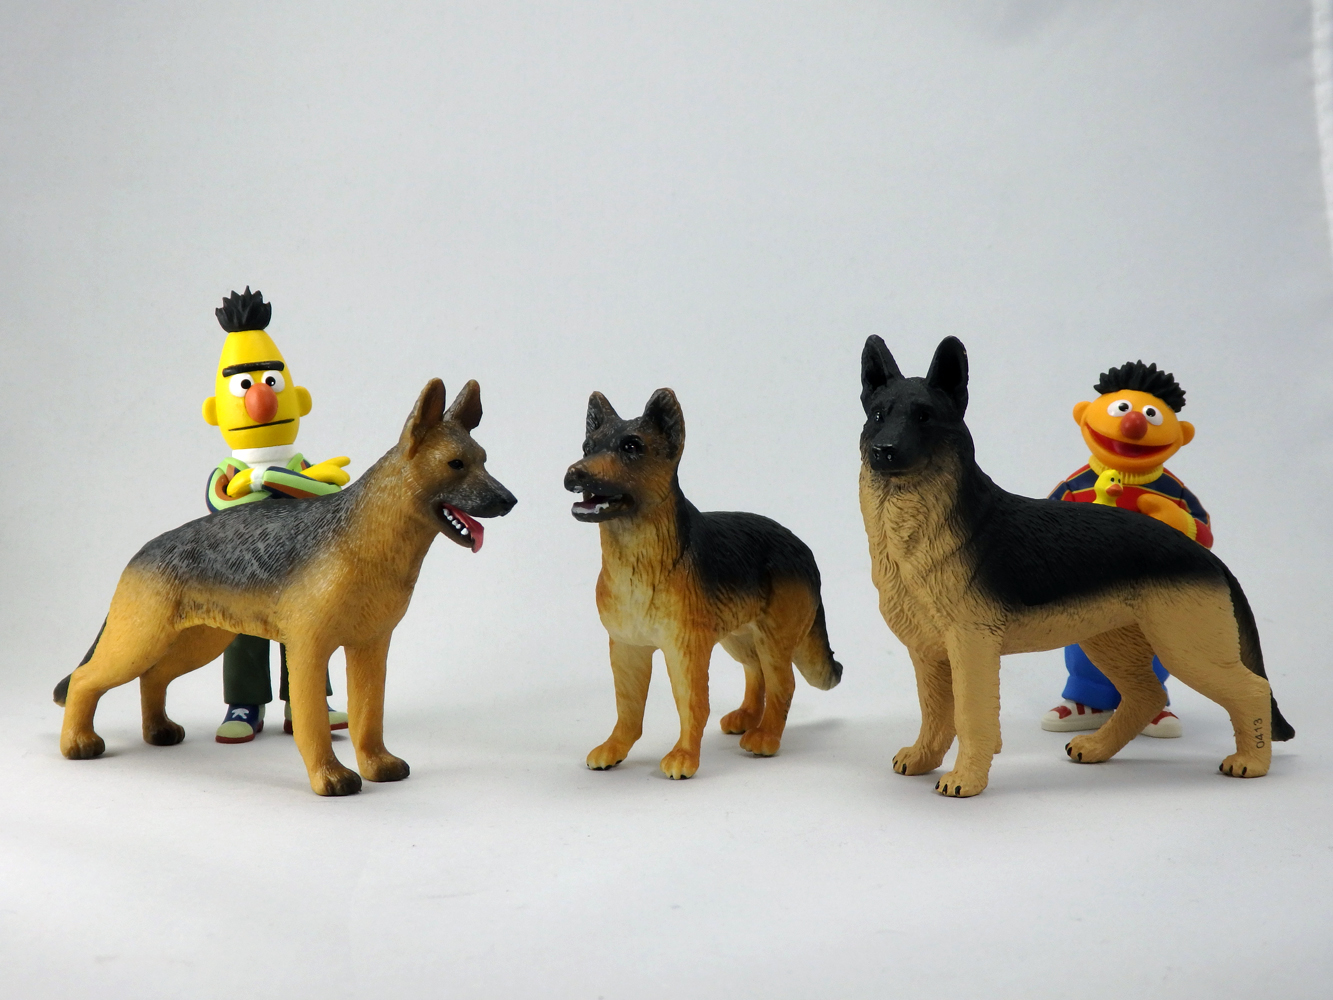 387260 Berger Allemand-Mojo Animal Planet dog figure